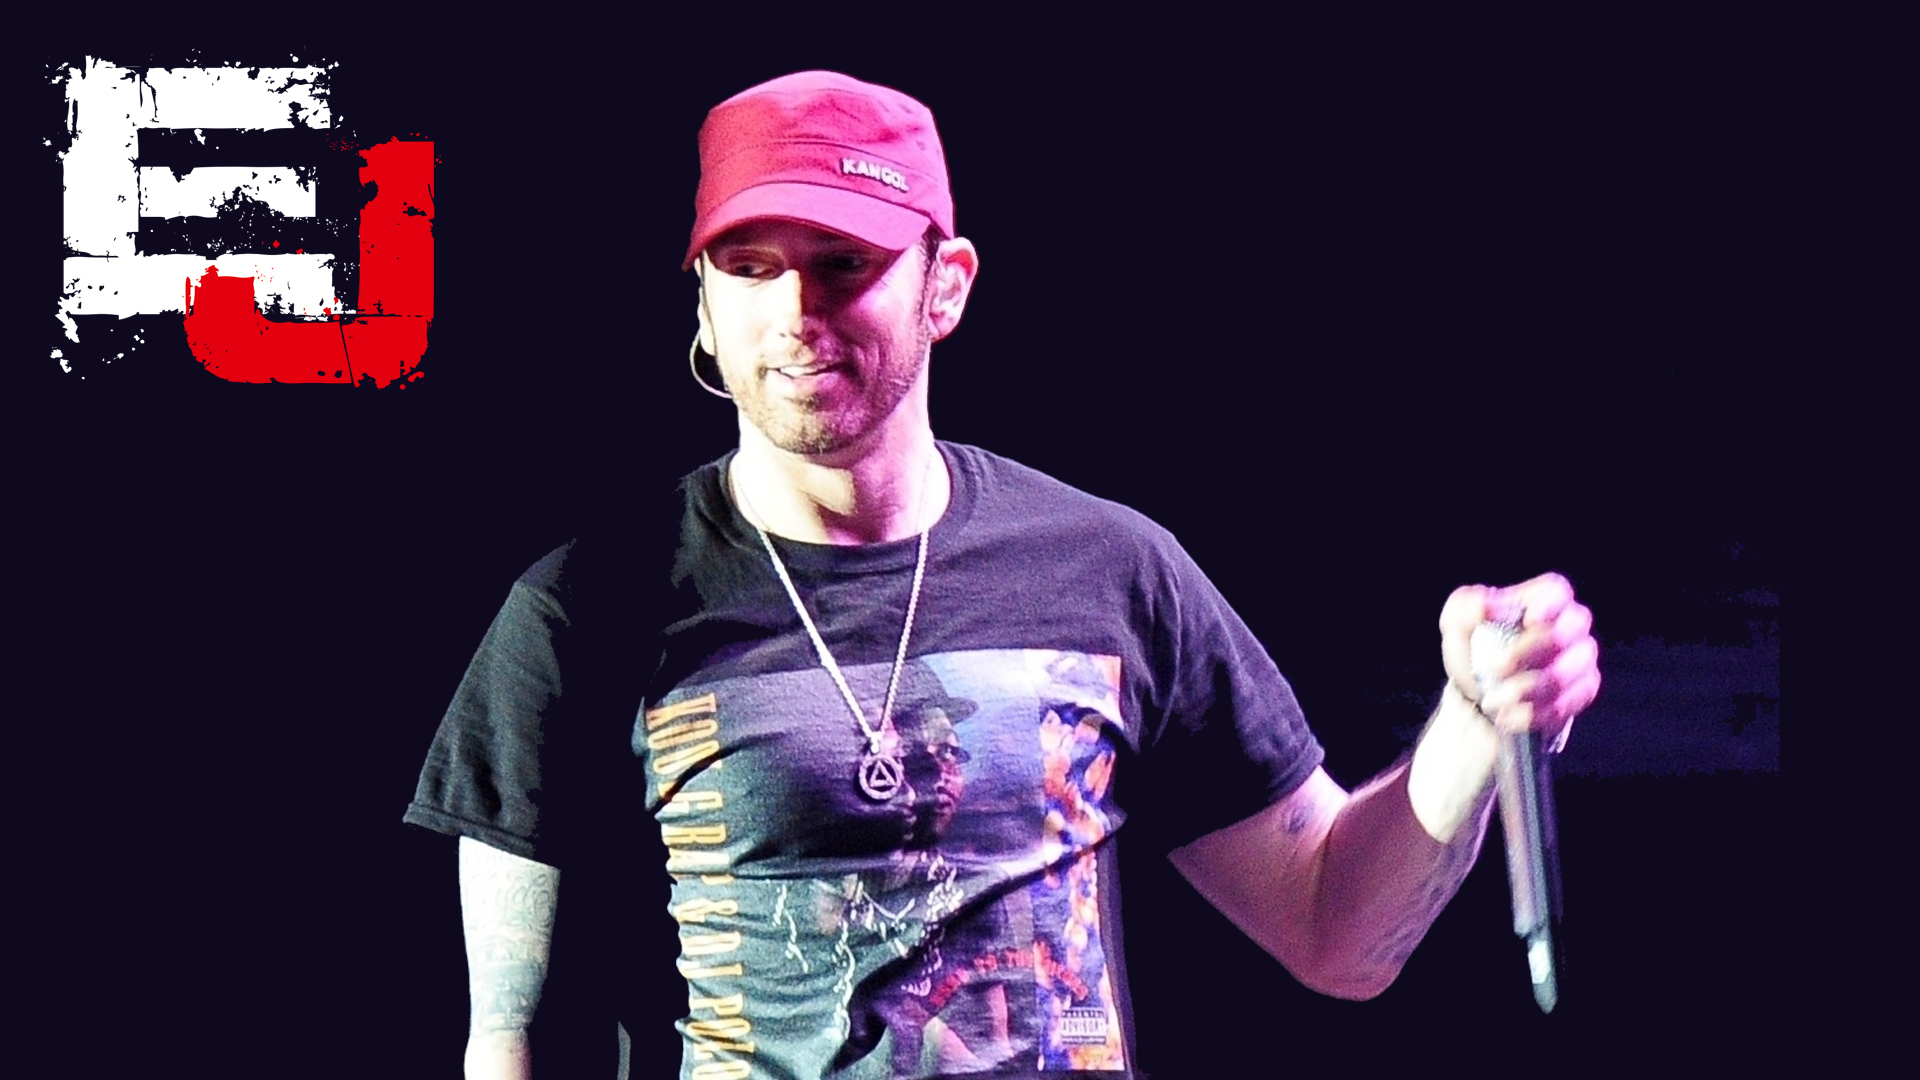 Tips for those who want to see Eminem's show. Get Ready for Revival tour!